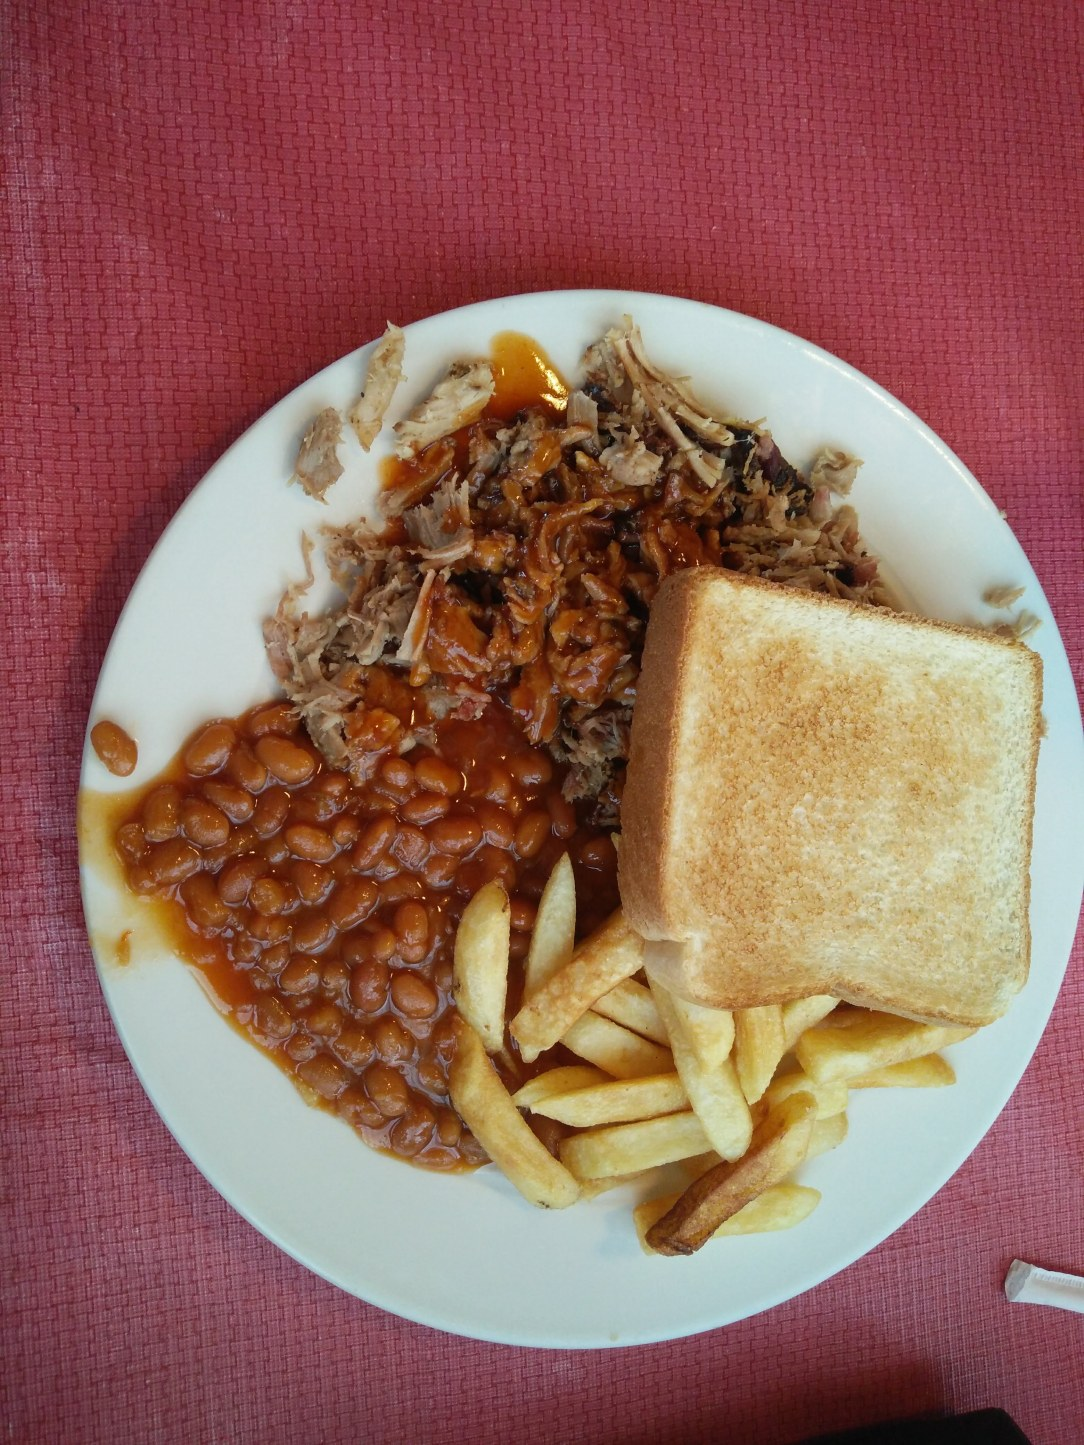 Hickory Pit chopped pork plate with beans, fries and Texas toast, in Chattanooga Tennessee